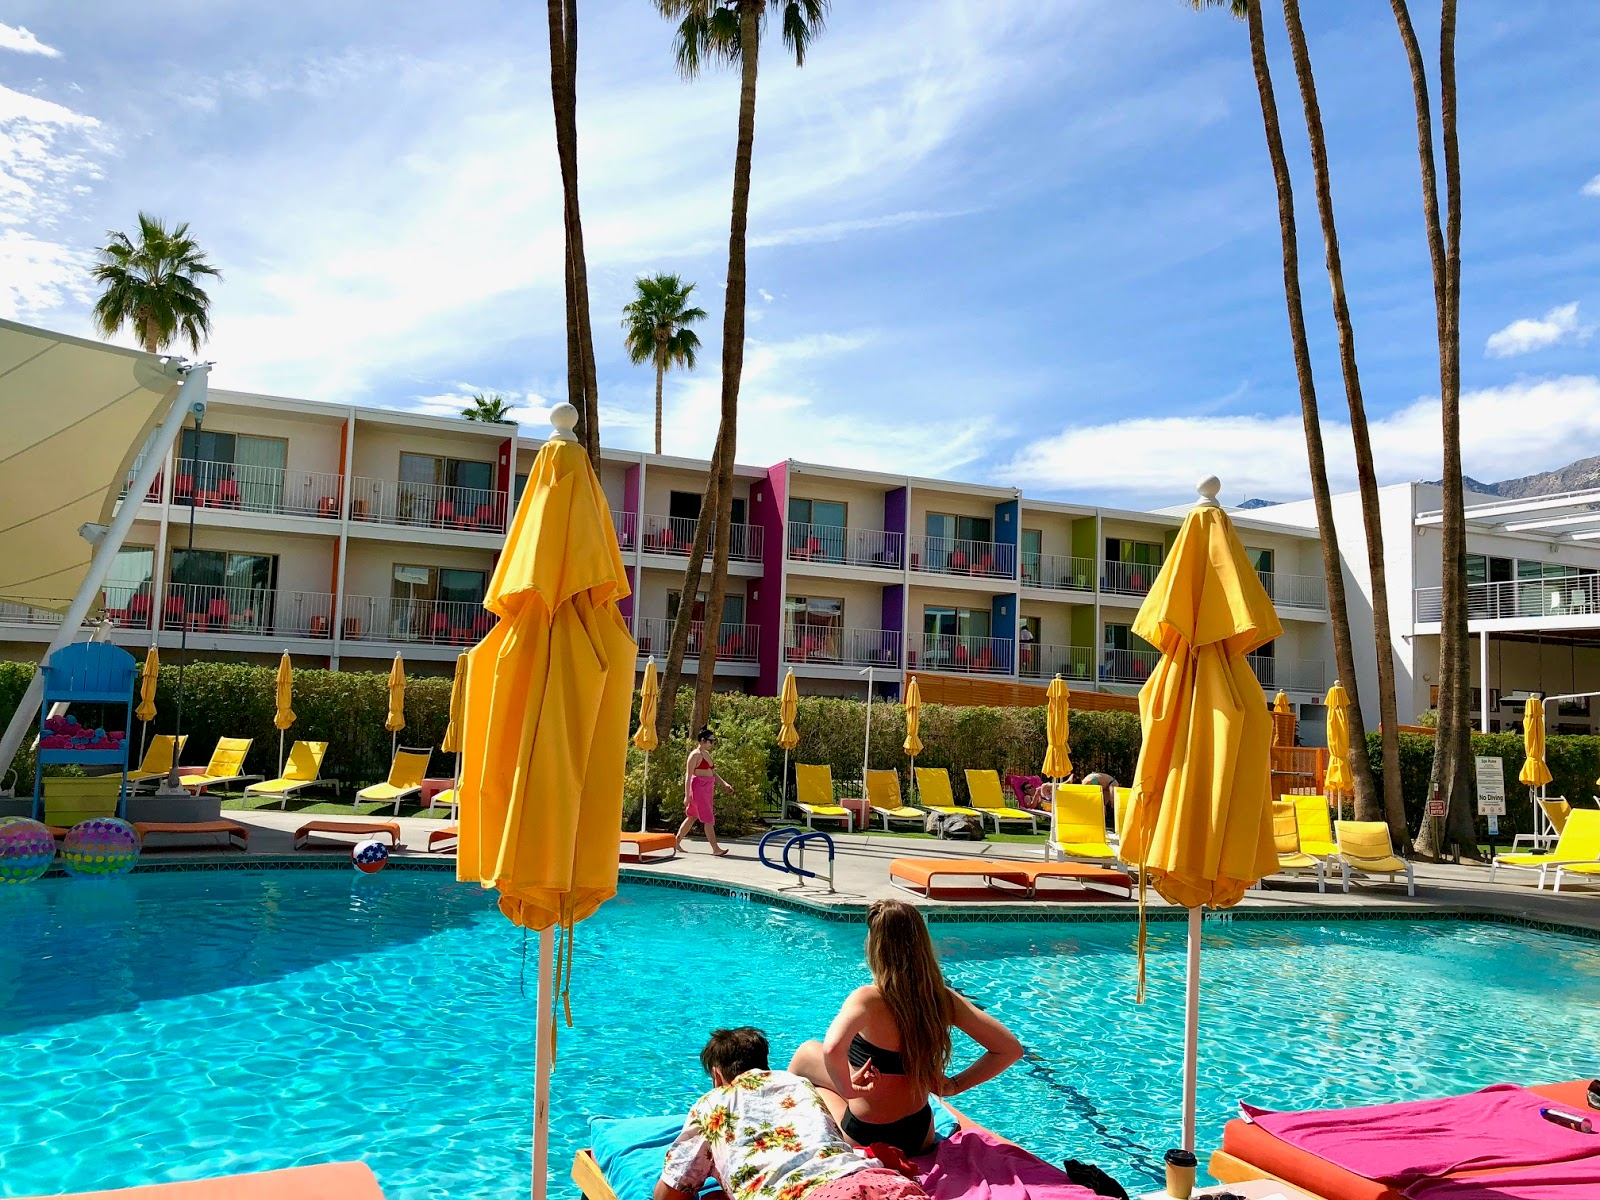 The Saguaro Palm Springs Hotel Review